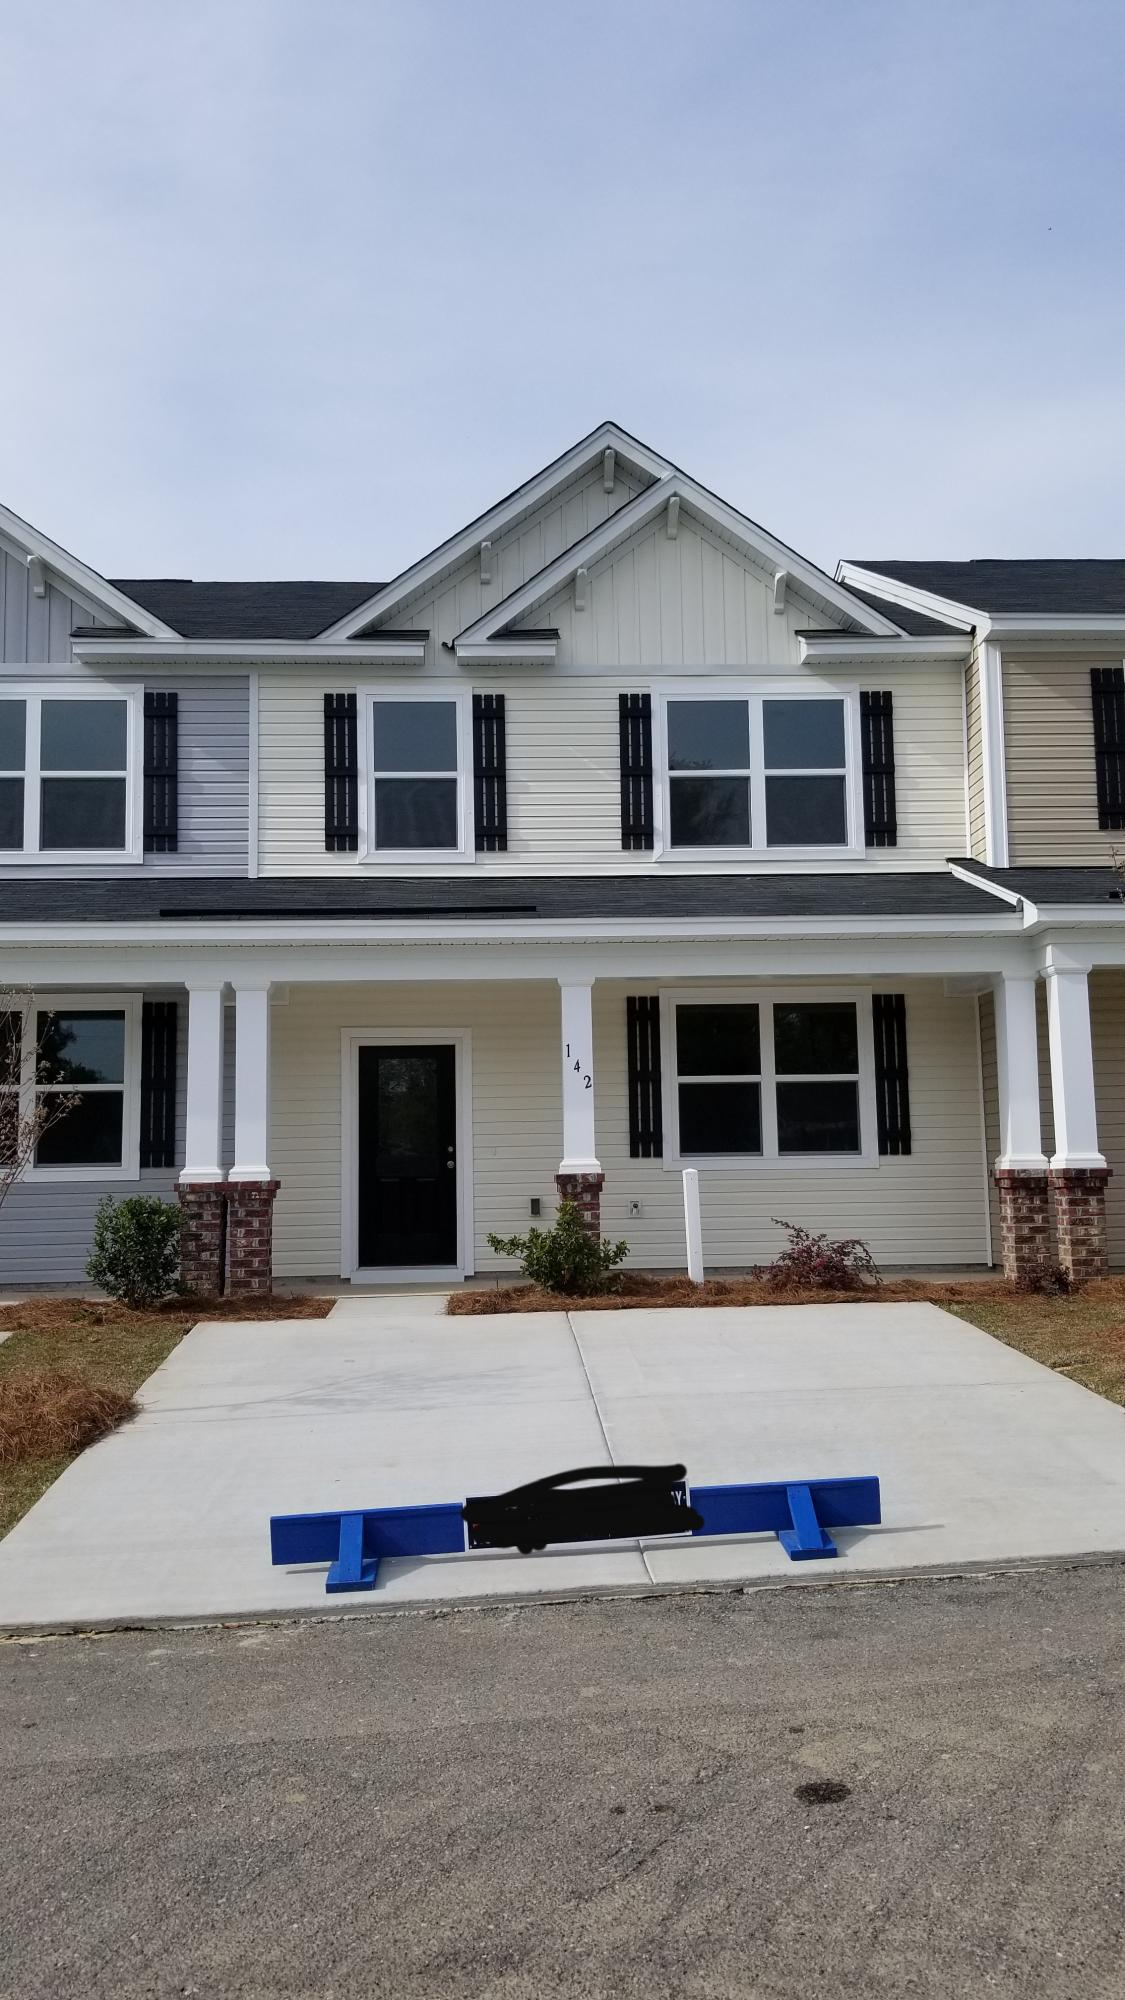 Eagle Creek Townhomes Homes For Sale - 142 Alma, Ladson, SC - 0